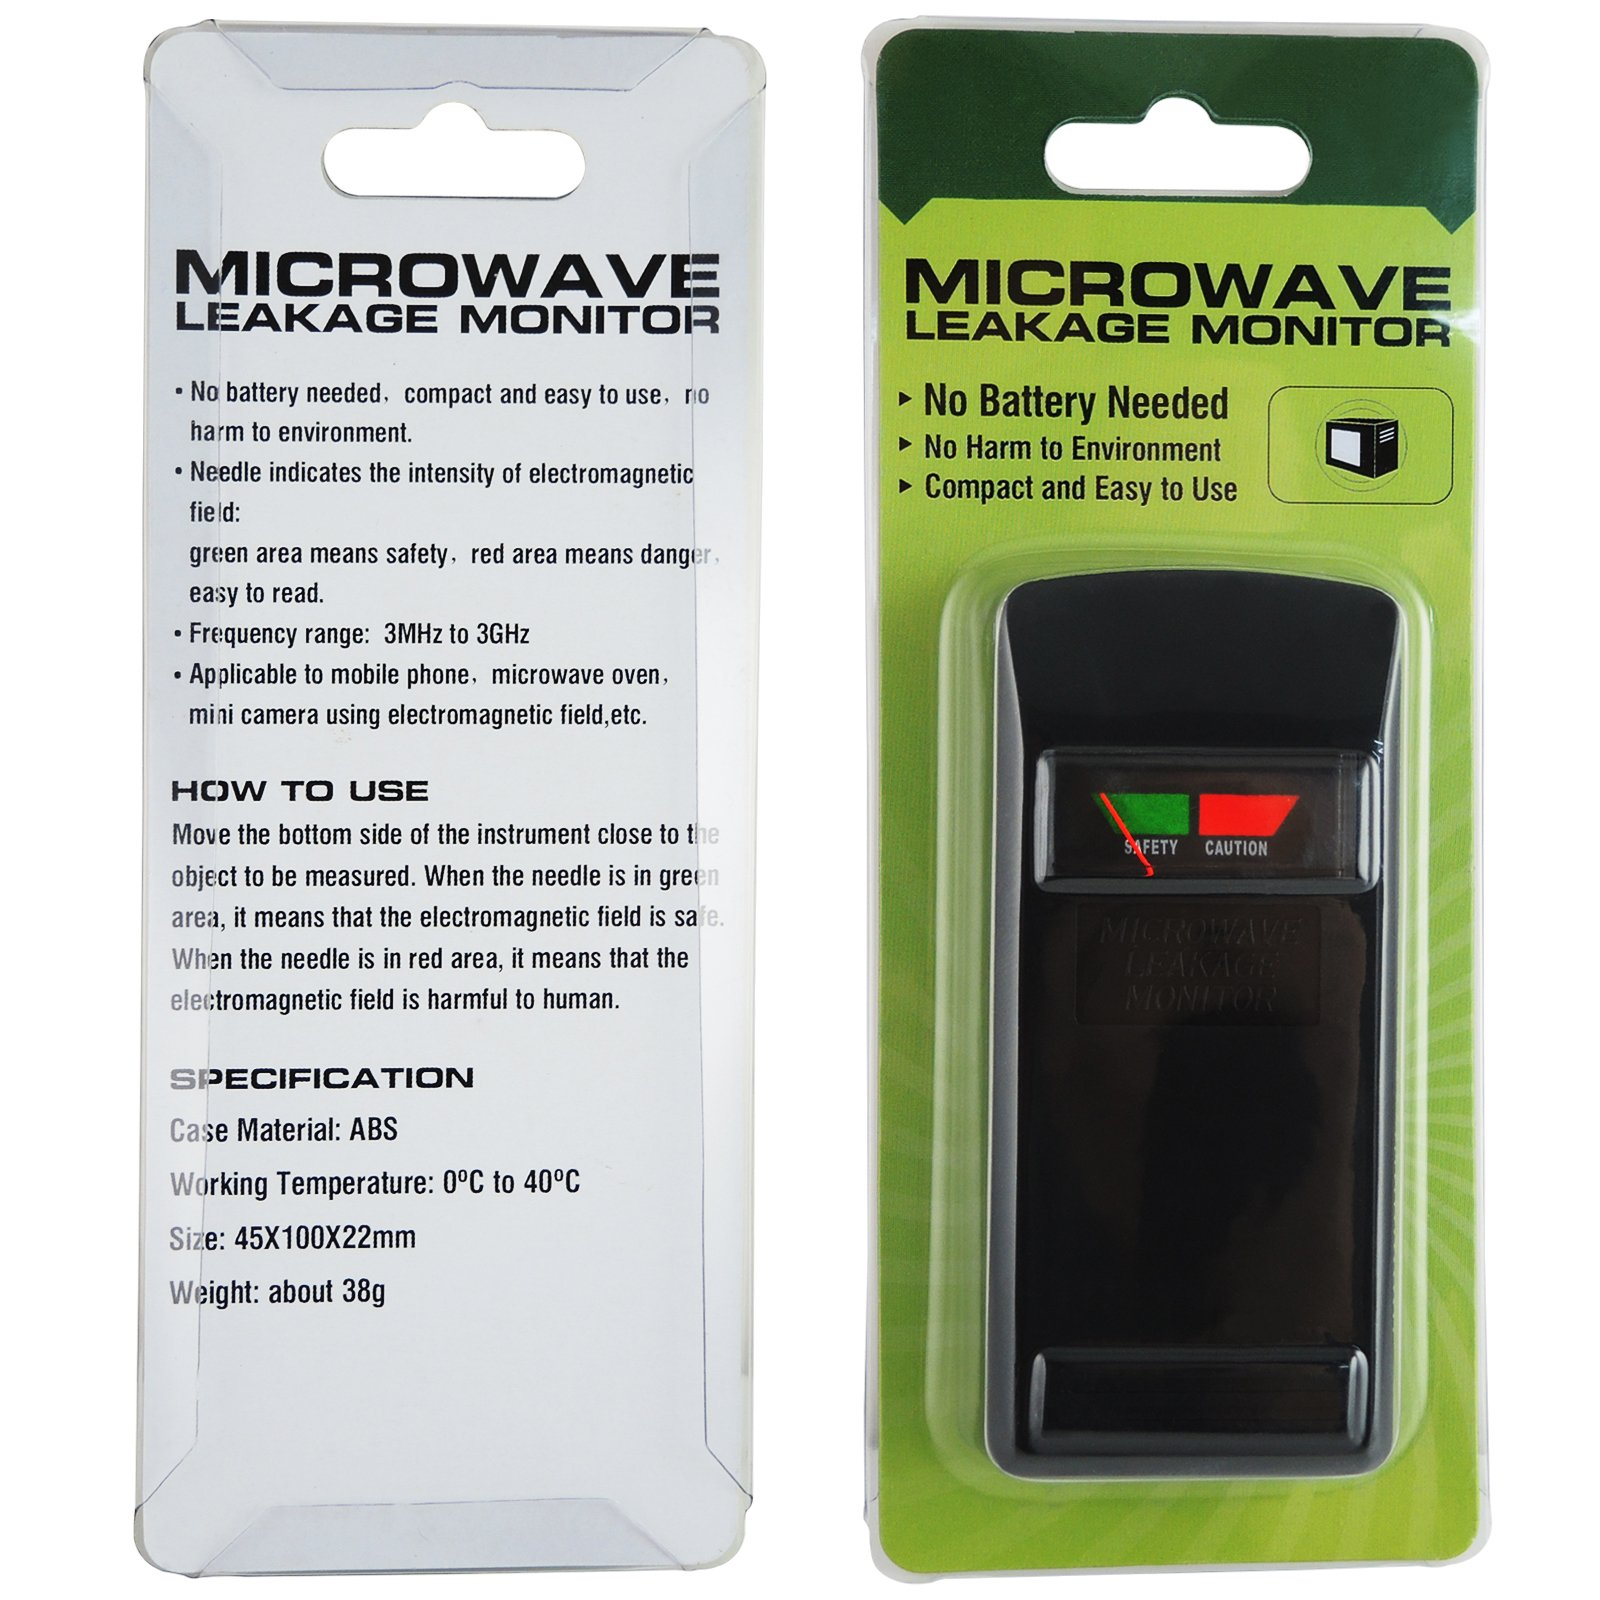 Microwave Mobile Phone Camera Leak Leakage Monitor 3mhz To